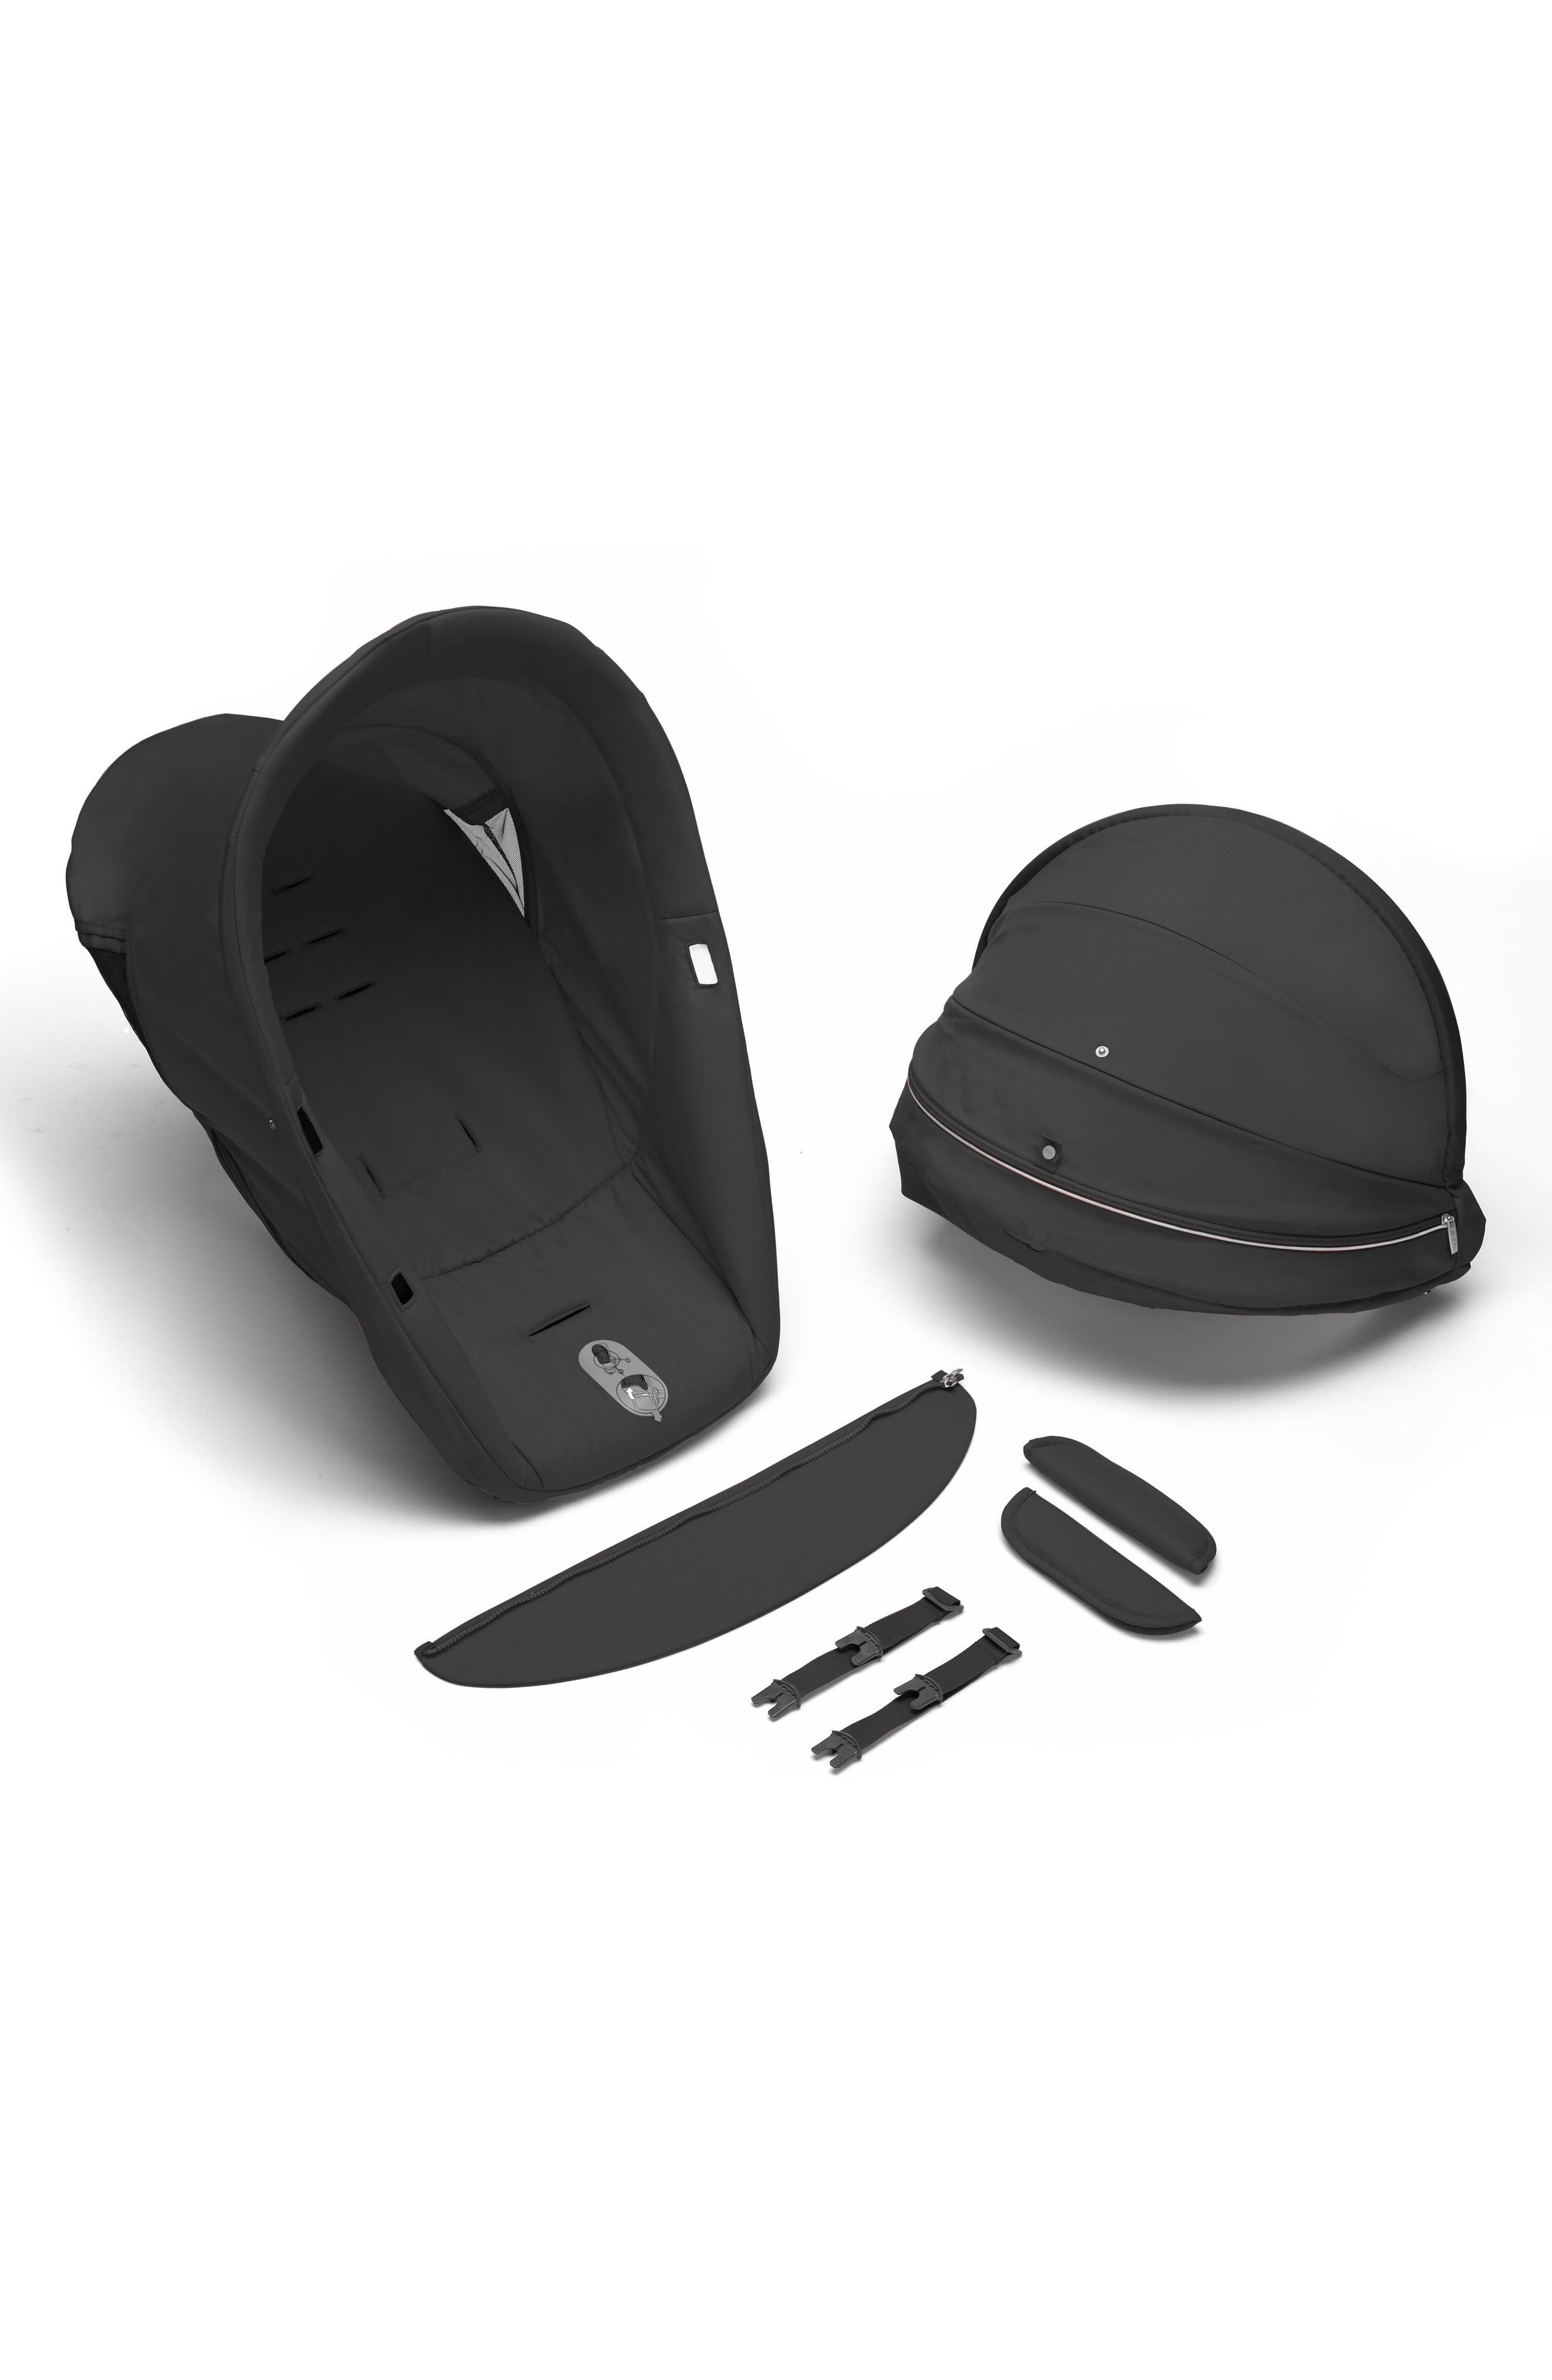 Scoot<sup>™</sup> Complete Stroller,                             Alternate thumbnail 14, color,                             Black